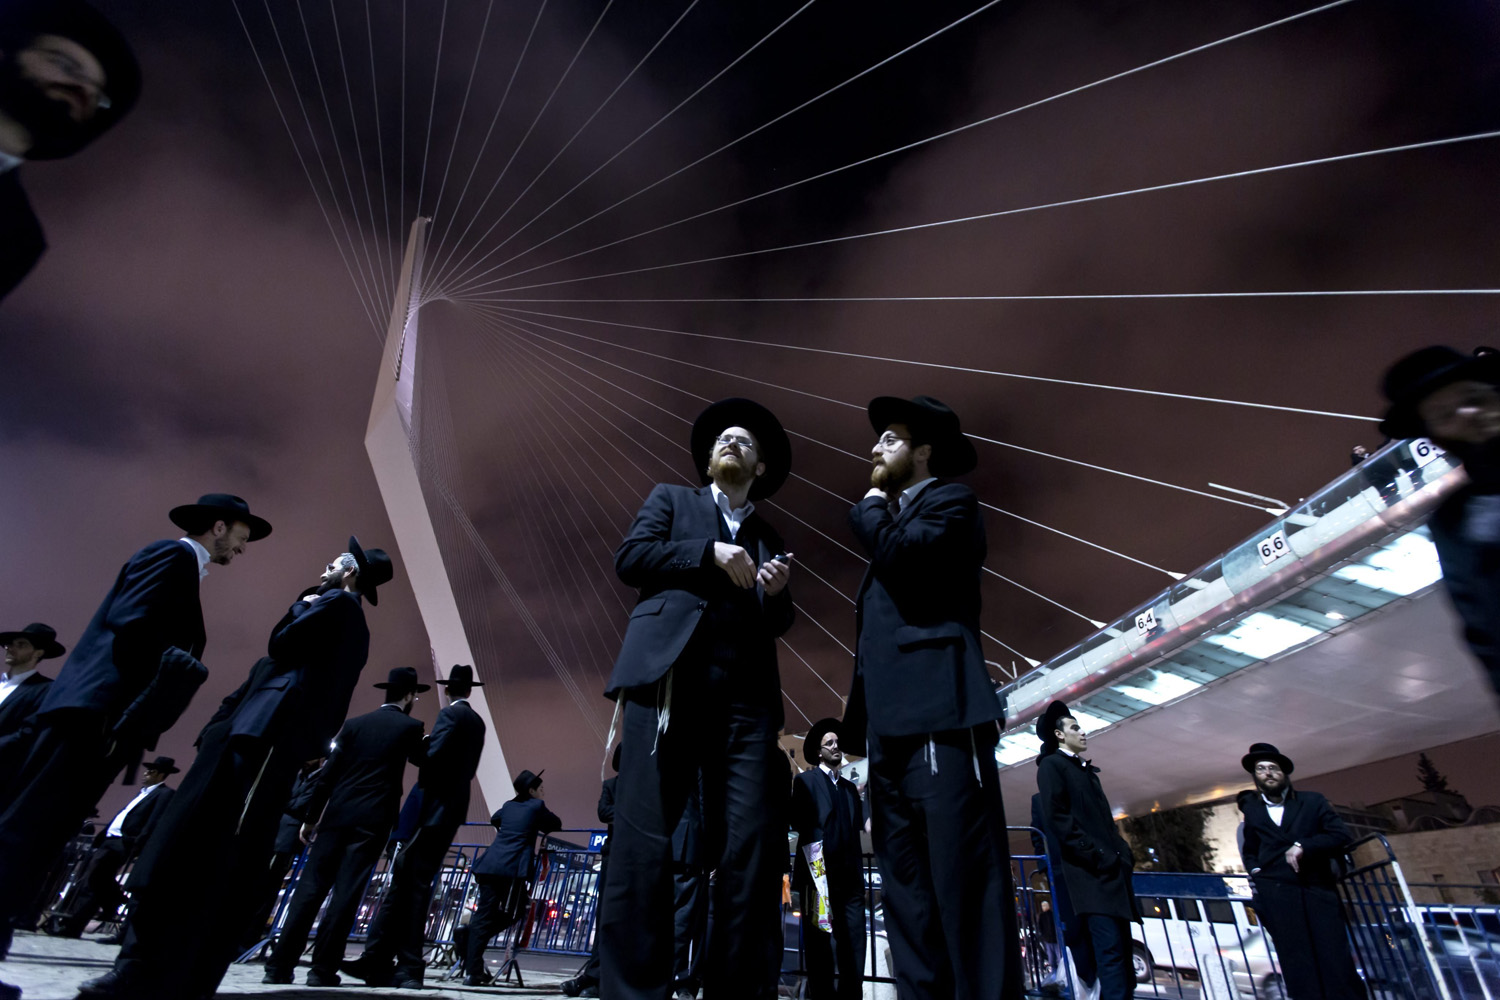 Mar.19, 2014. Ultra-Orthodox Jewish men gather under the Chords Bridge during a demonstration against military conscription held at the entrance to Jerusalem.